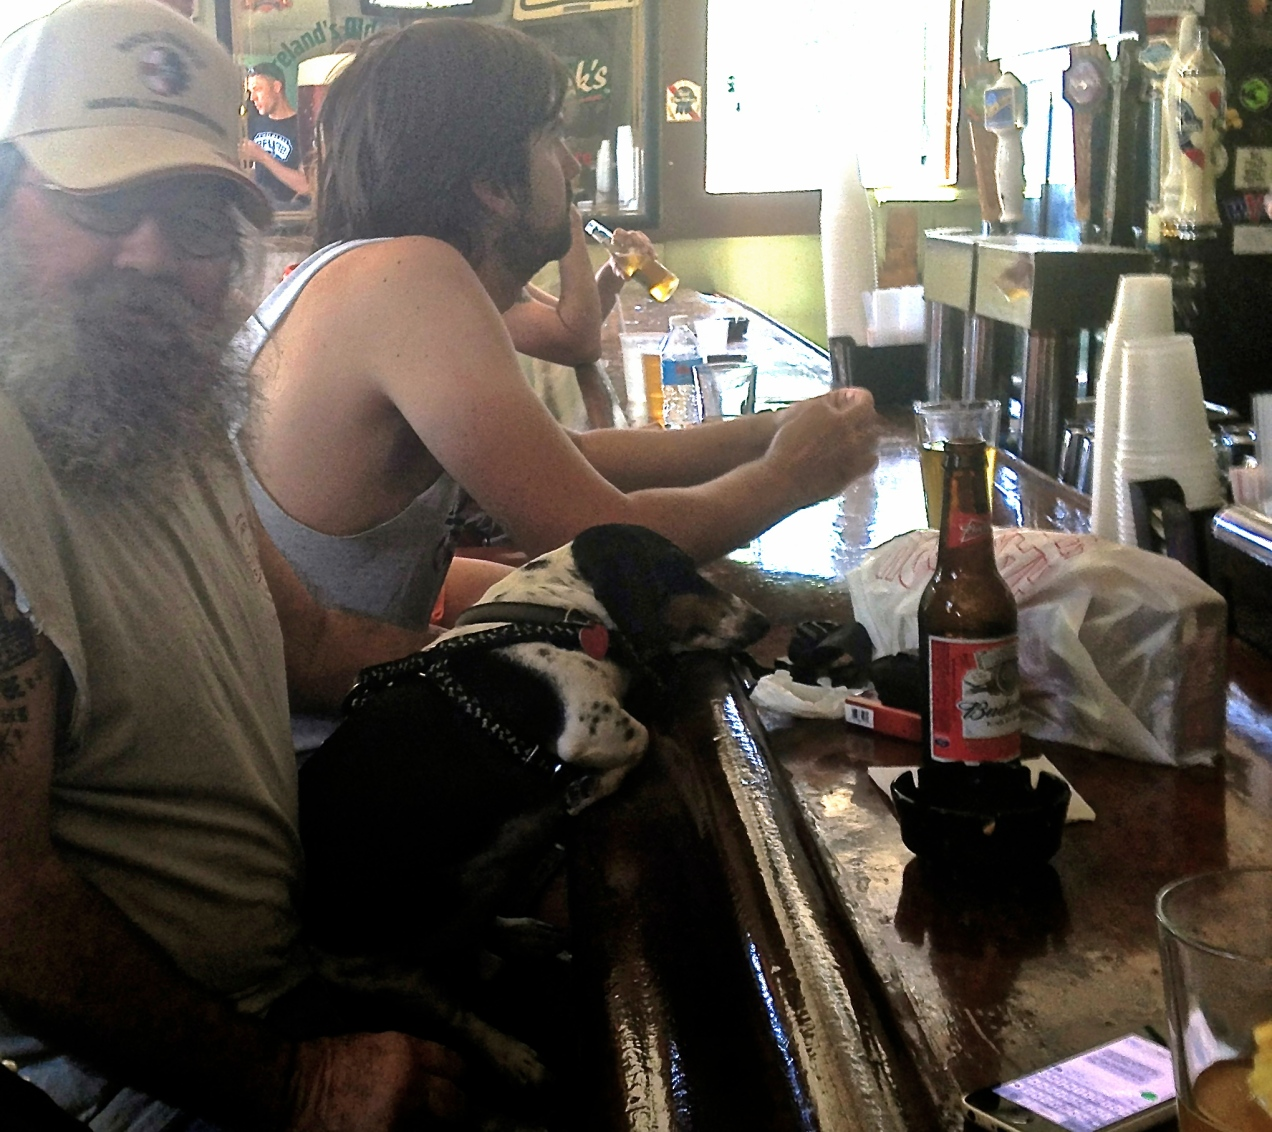 Nothing unusual in Parasol's Bar, known for its Po Boy sandwiches, fully dressed.